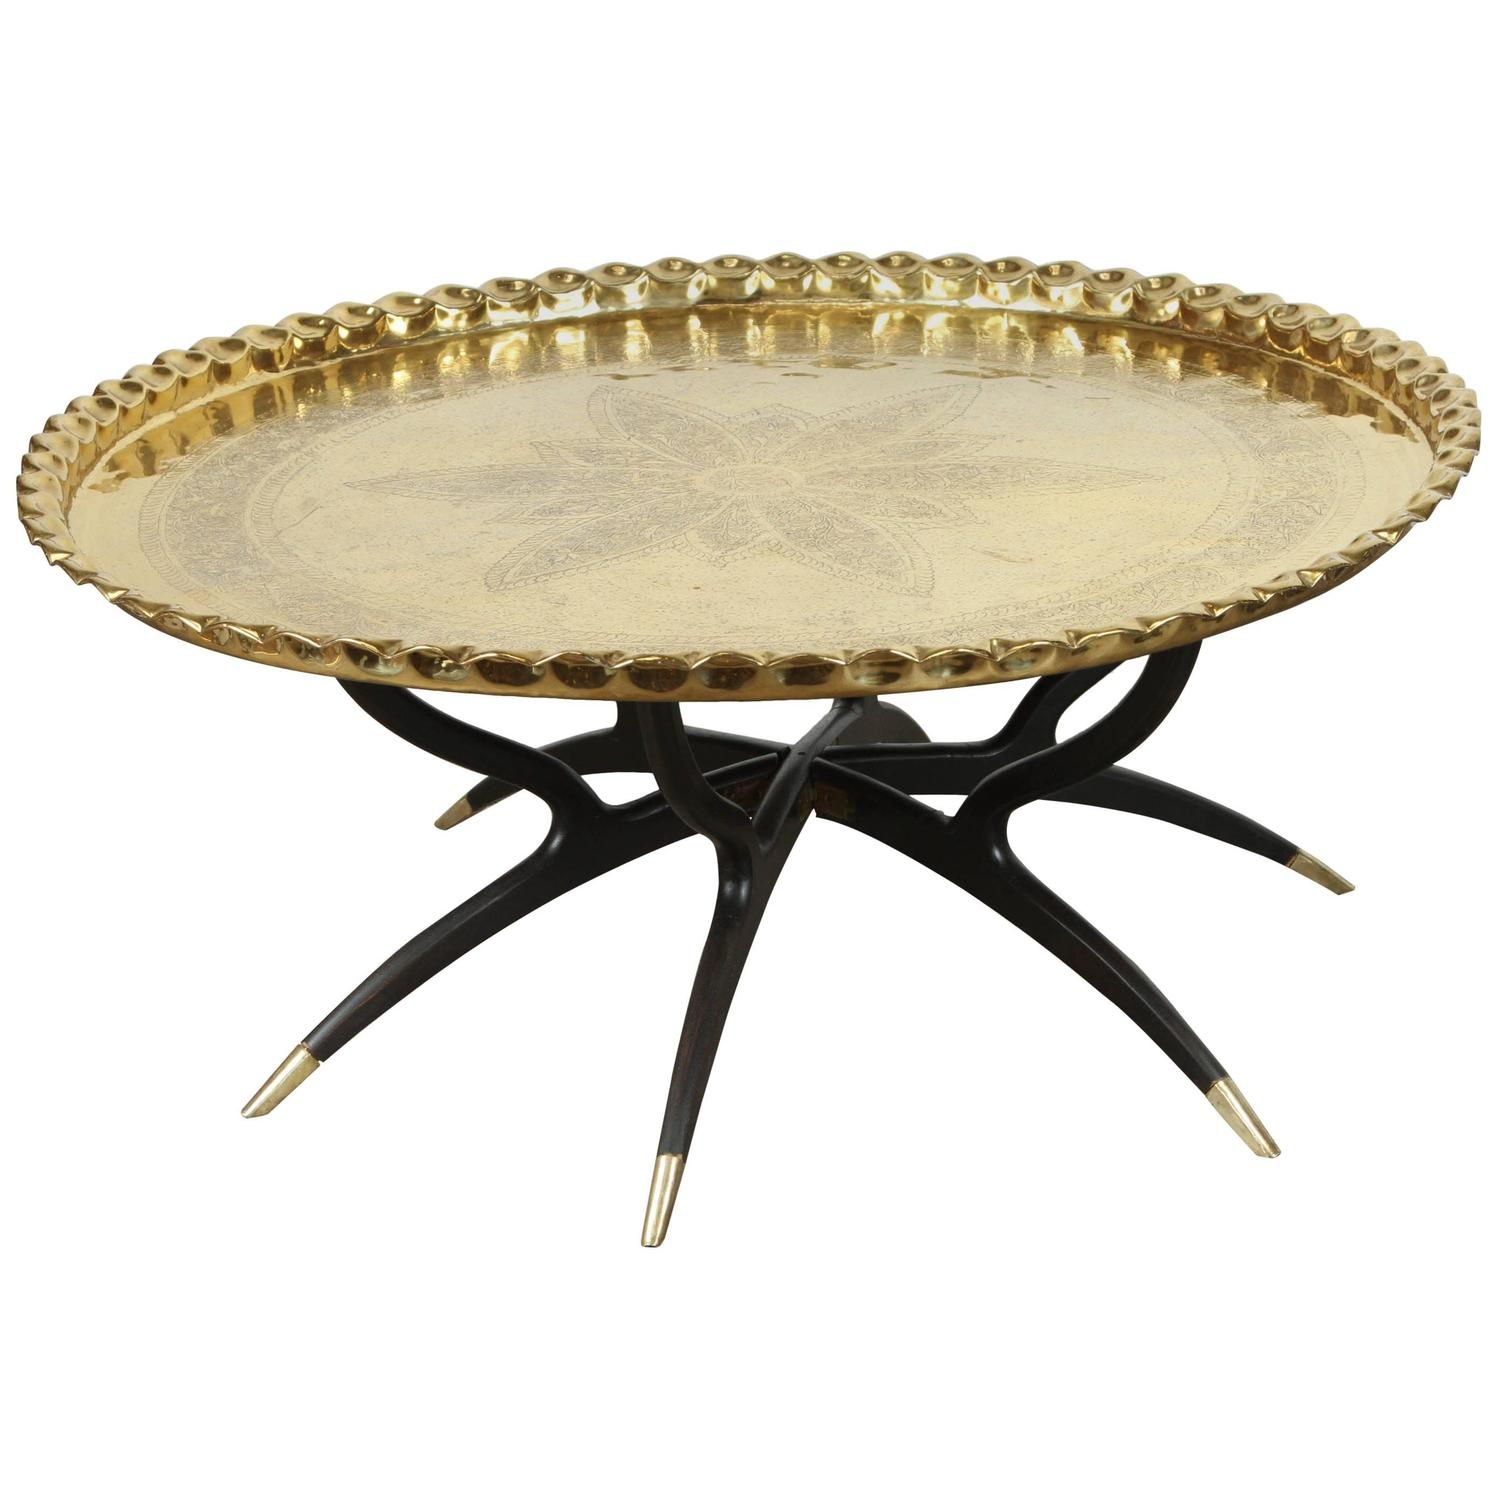 Brass Display Coffee Table: Large Polished Brass Tray Coffee Table On Spider-Leg For